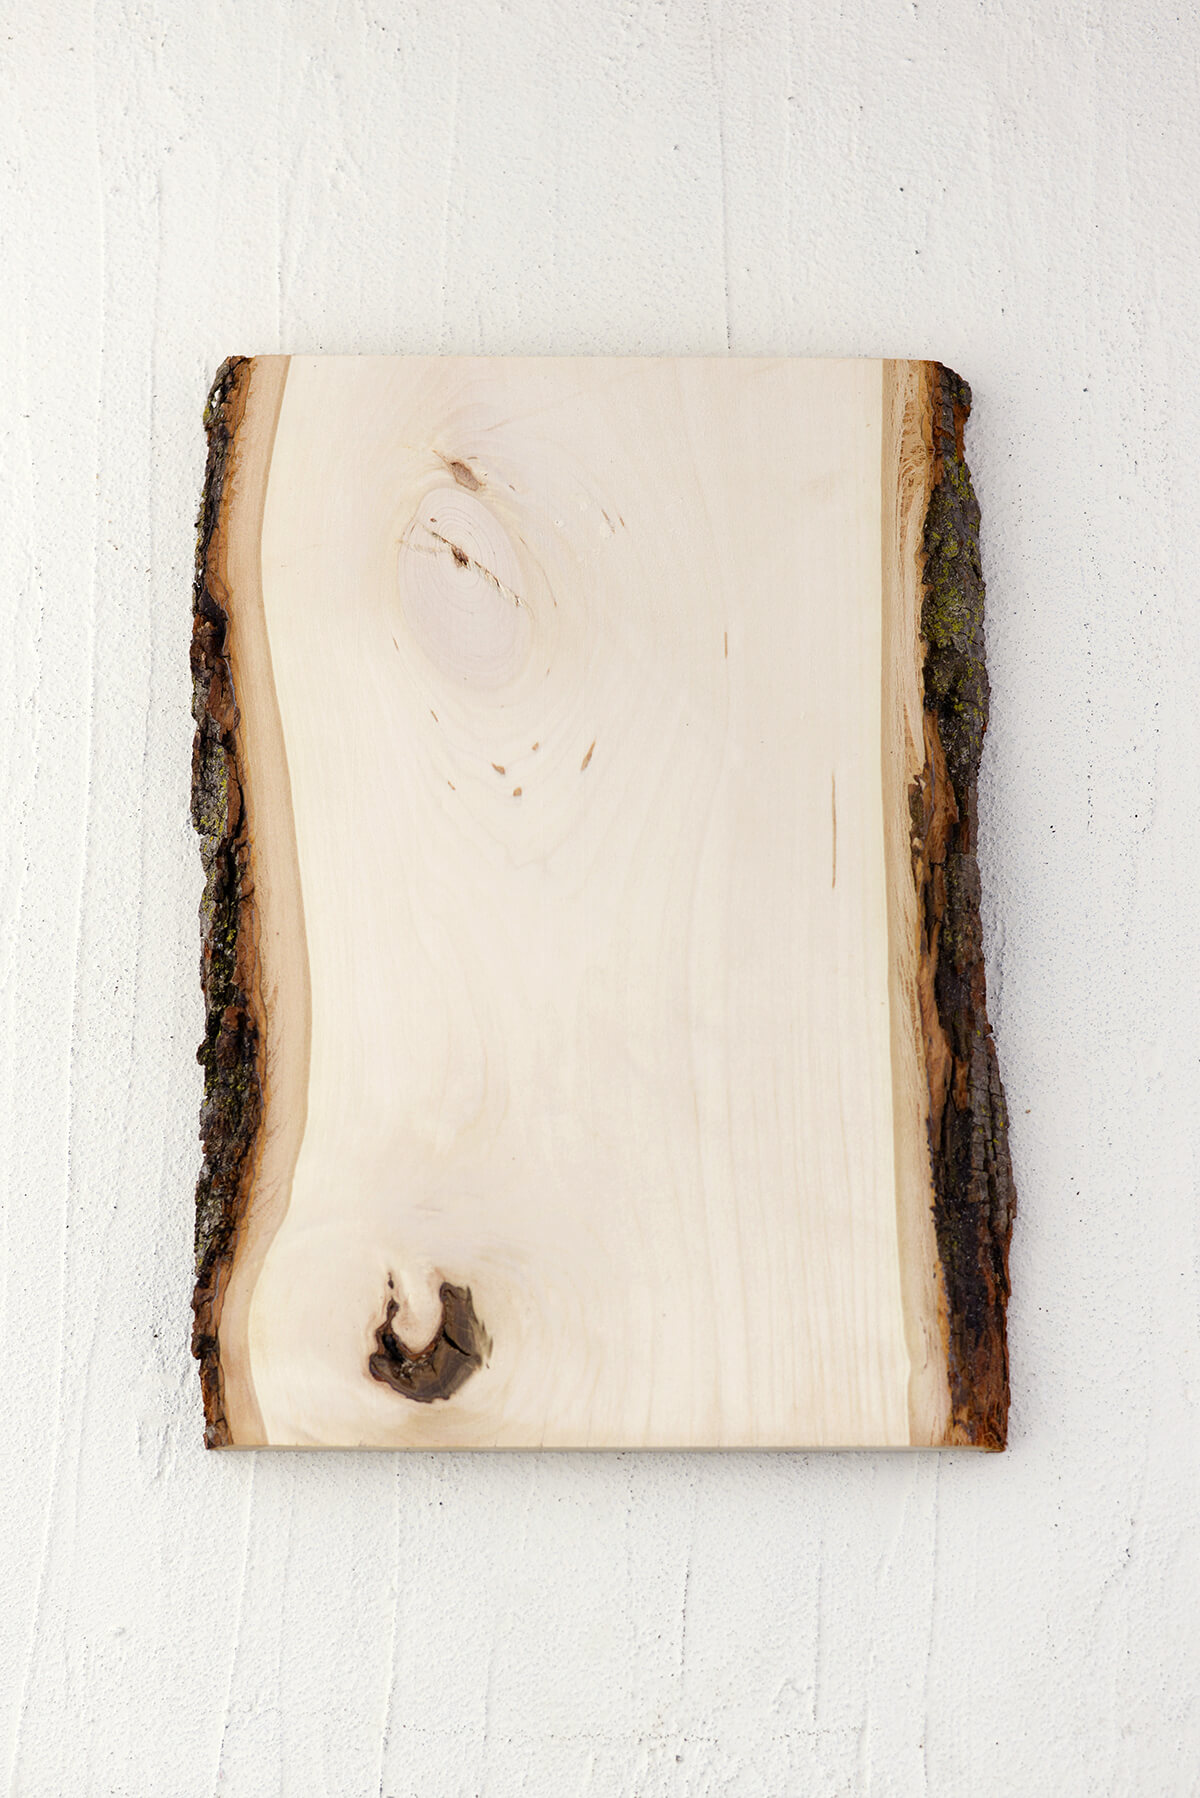 Wood Plank With Bark 13 Quot X 9 11 Quot